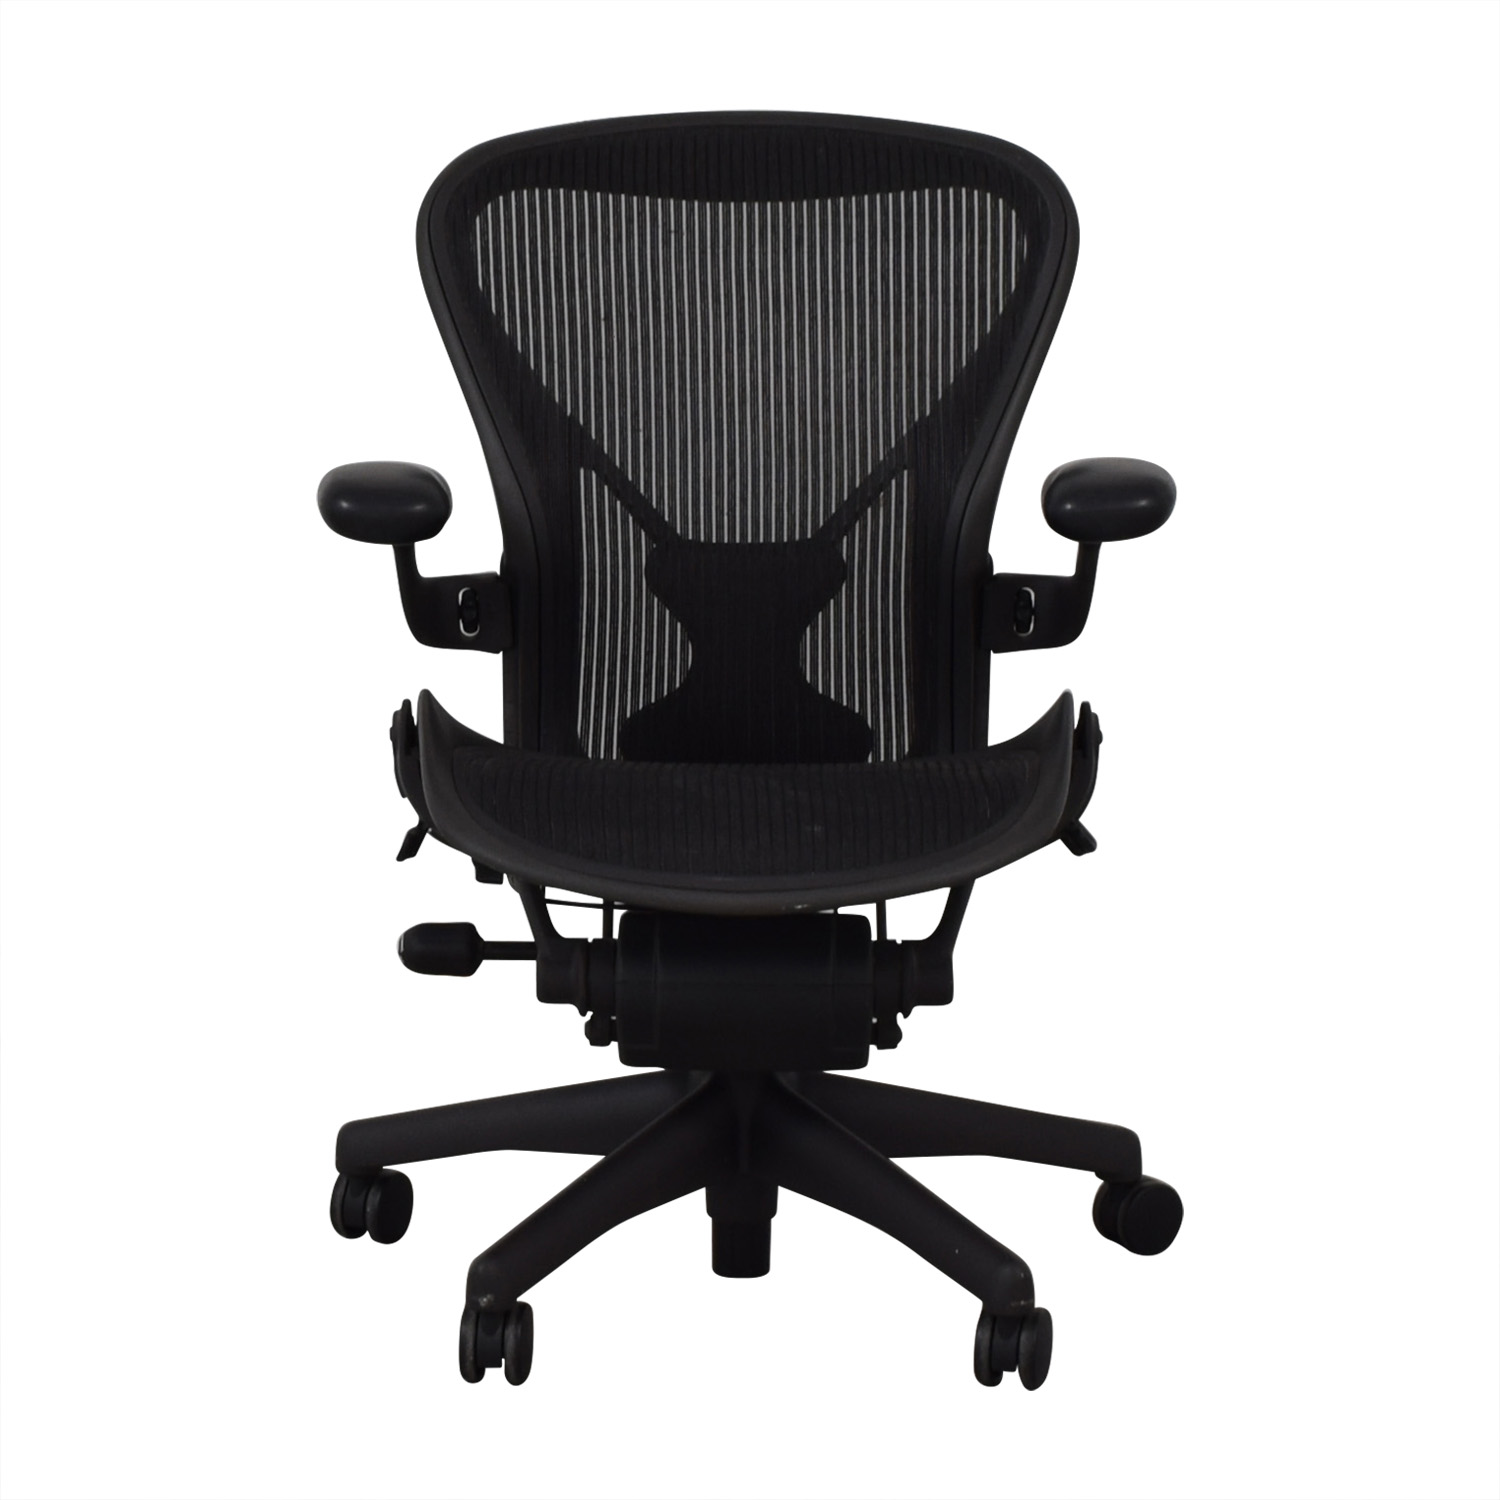 5f113f7a5fb 40% OFF - Herman Miller Herman Miller Aeron Desk Chair   Chairs